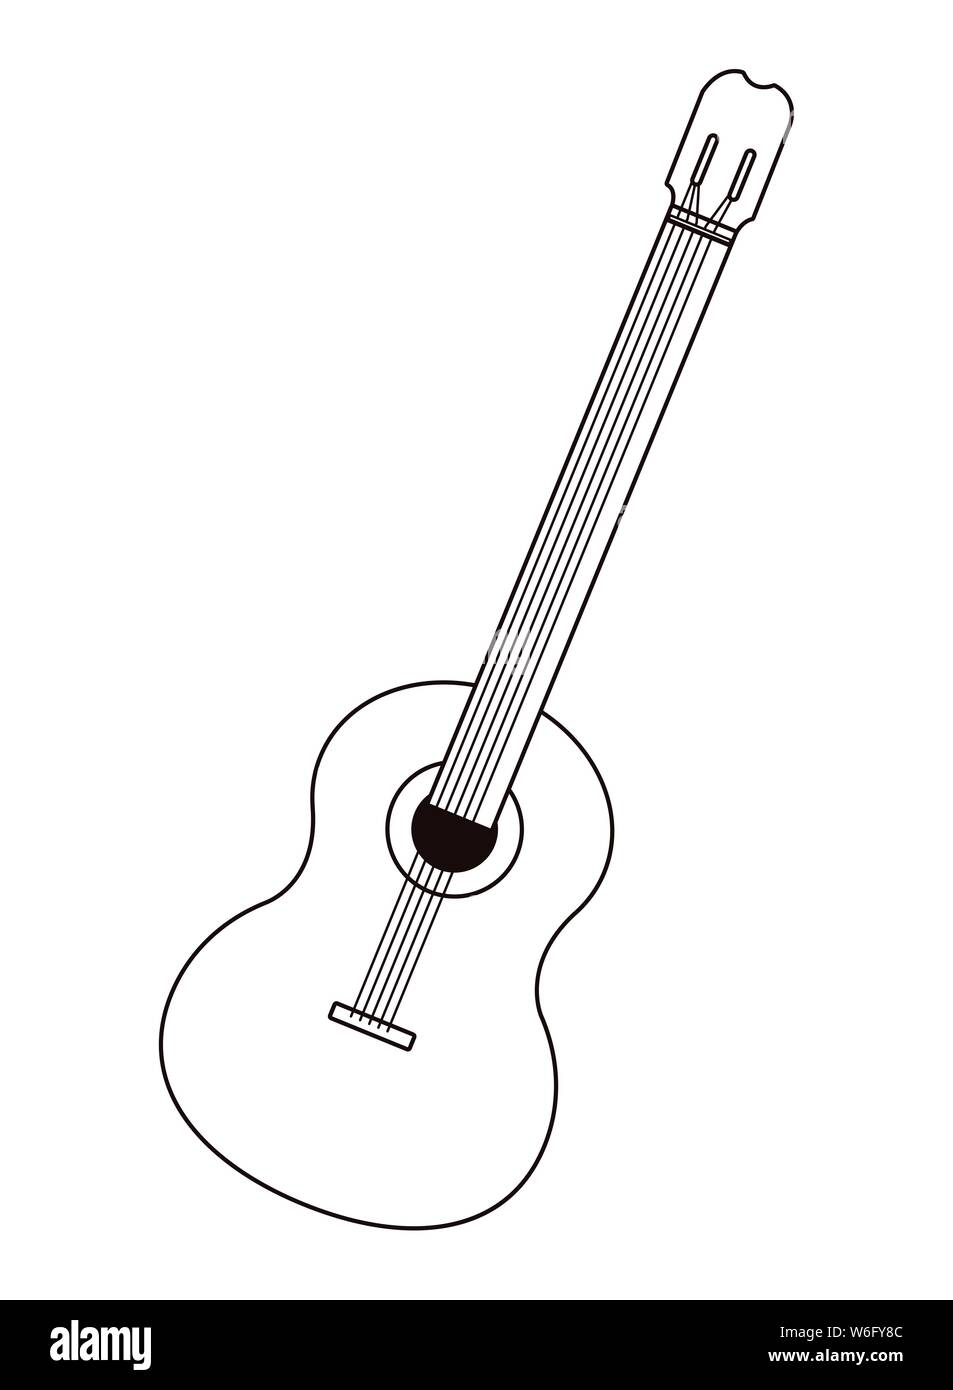 Acoustic Guitar Music Instrument Cartoon In Black And White Stock Vector Image Art Alamy